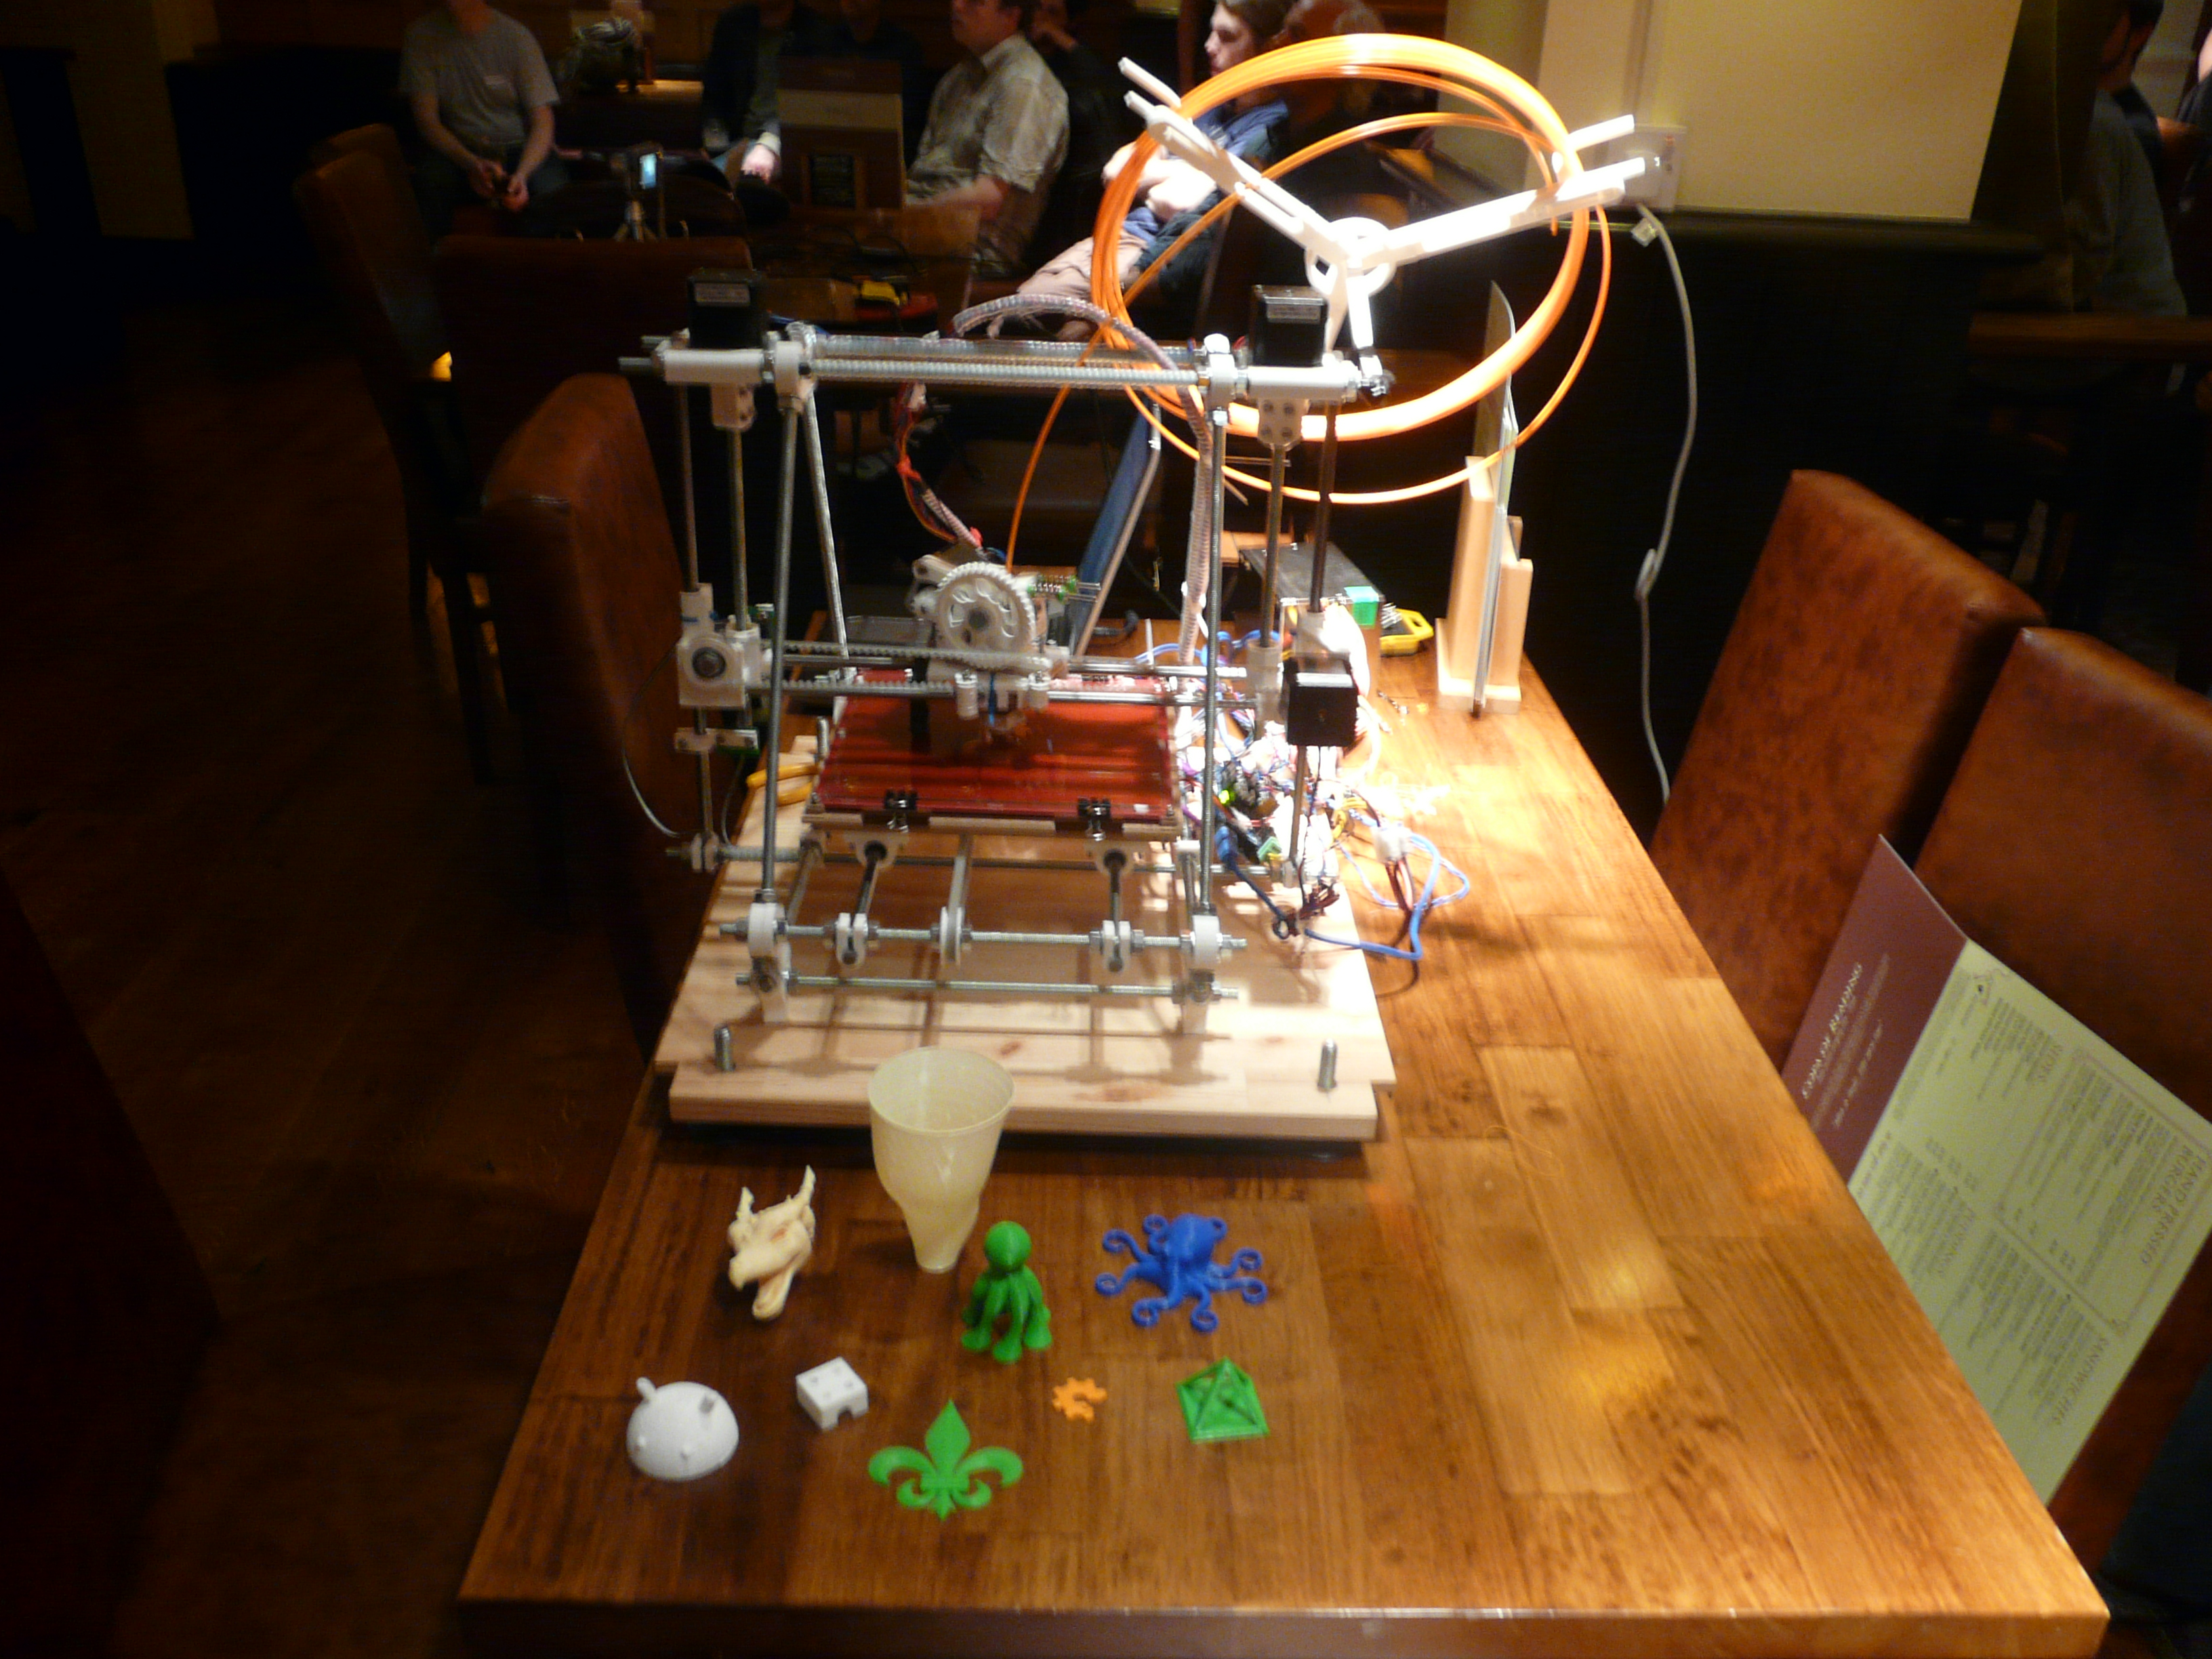 Our Prusa